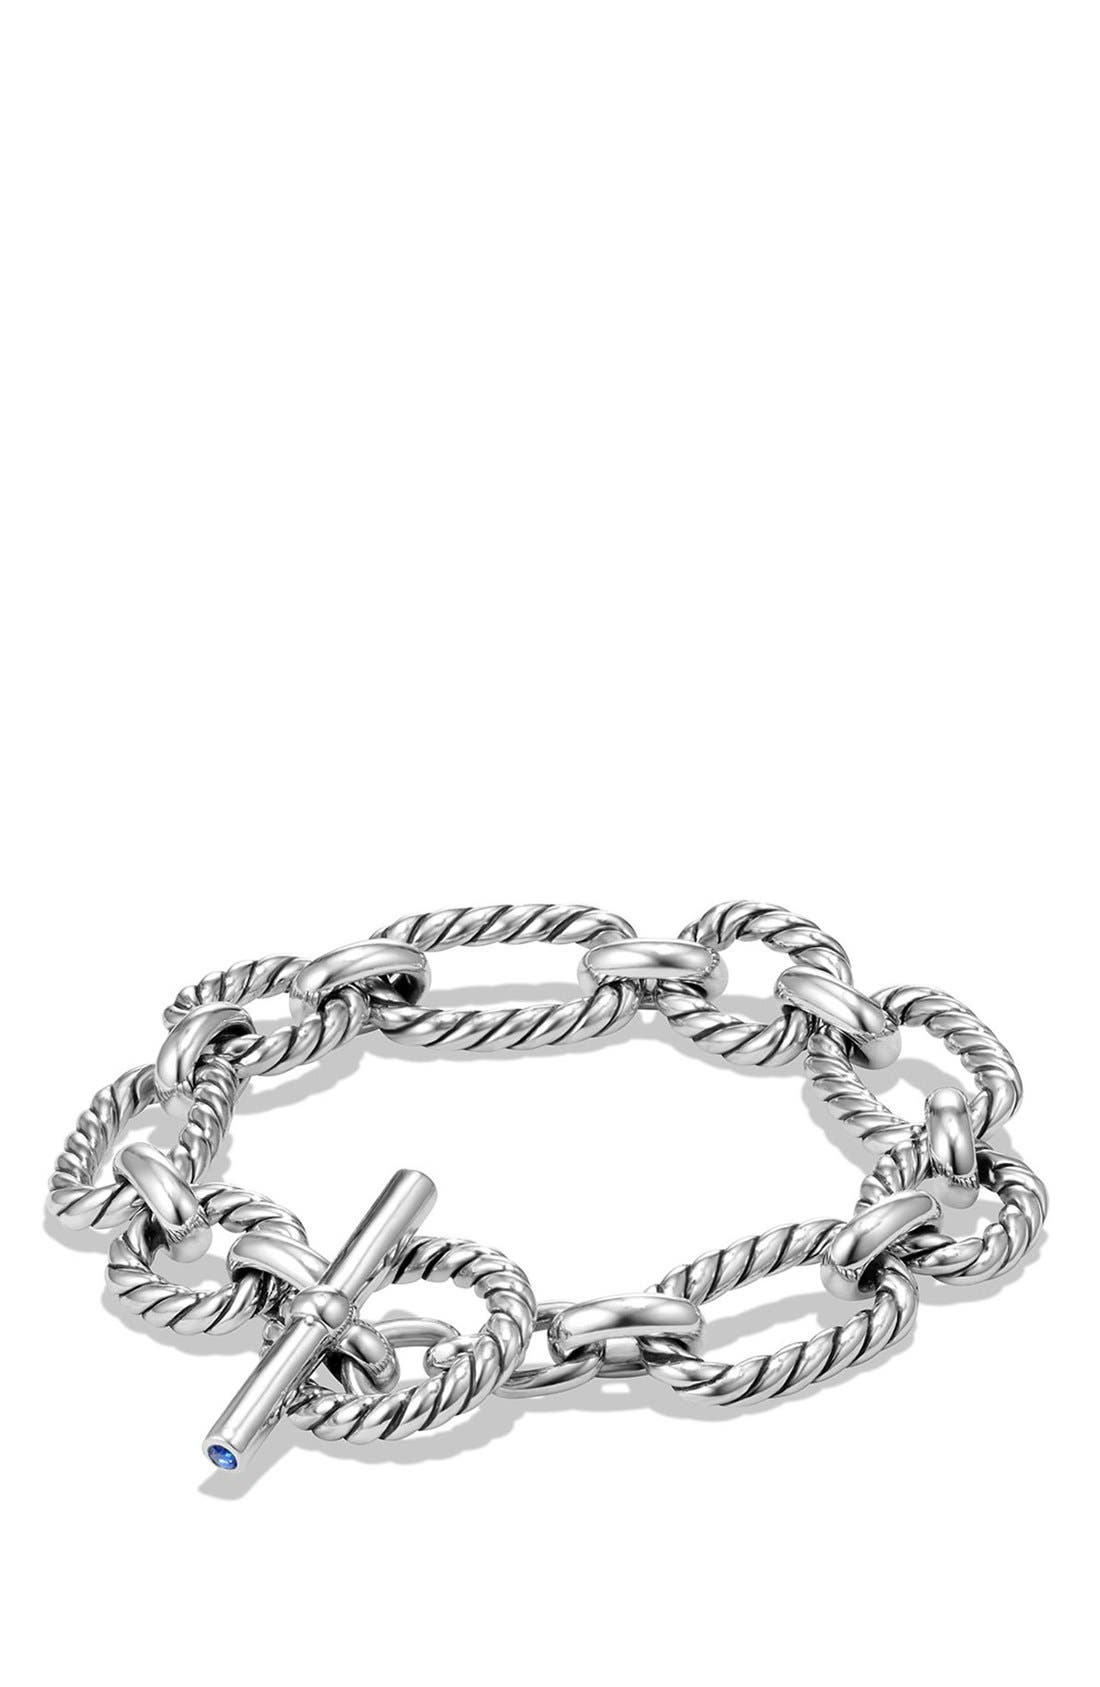 David Yurman 'Chain' Cushion Link Bracelet with Blue Sapphires